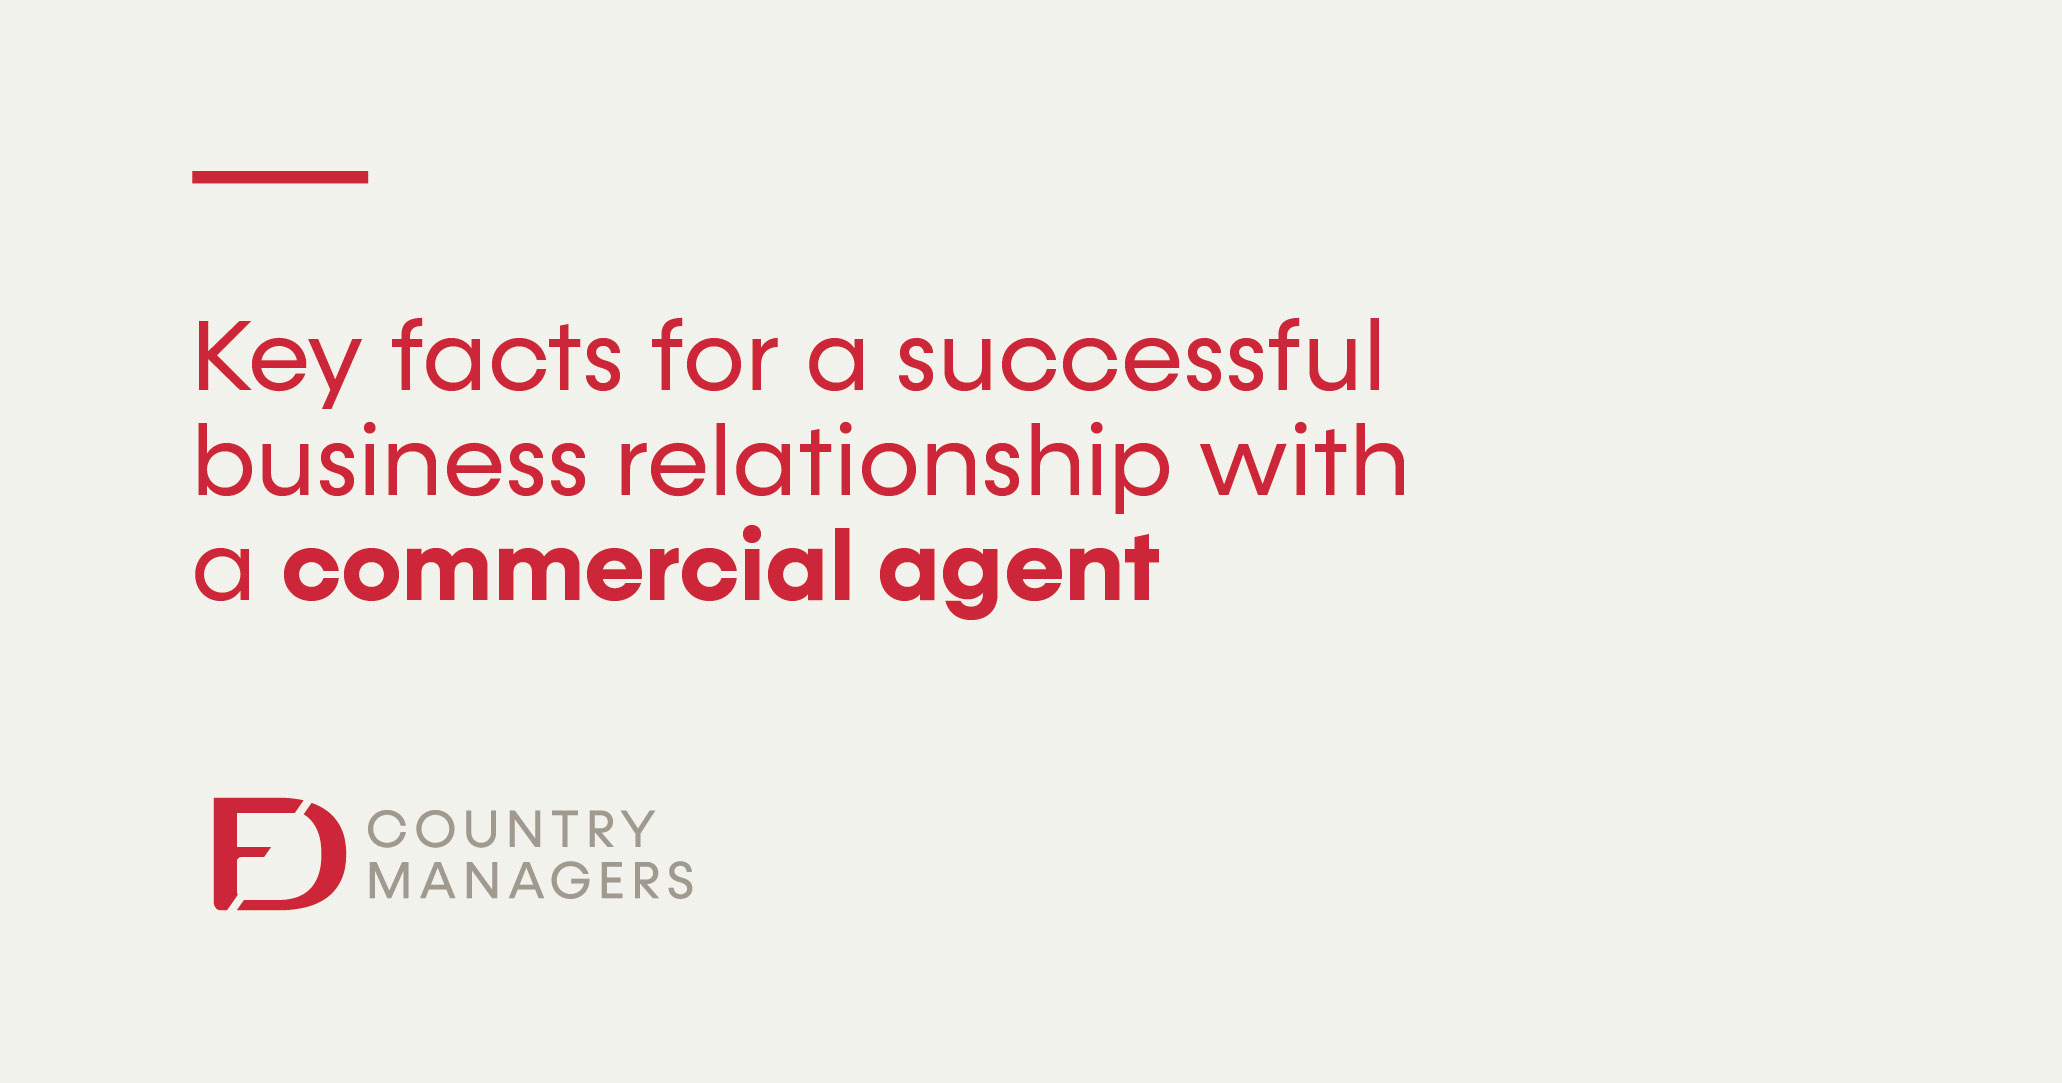 Key facts for a successful business relationship with a commercial agent